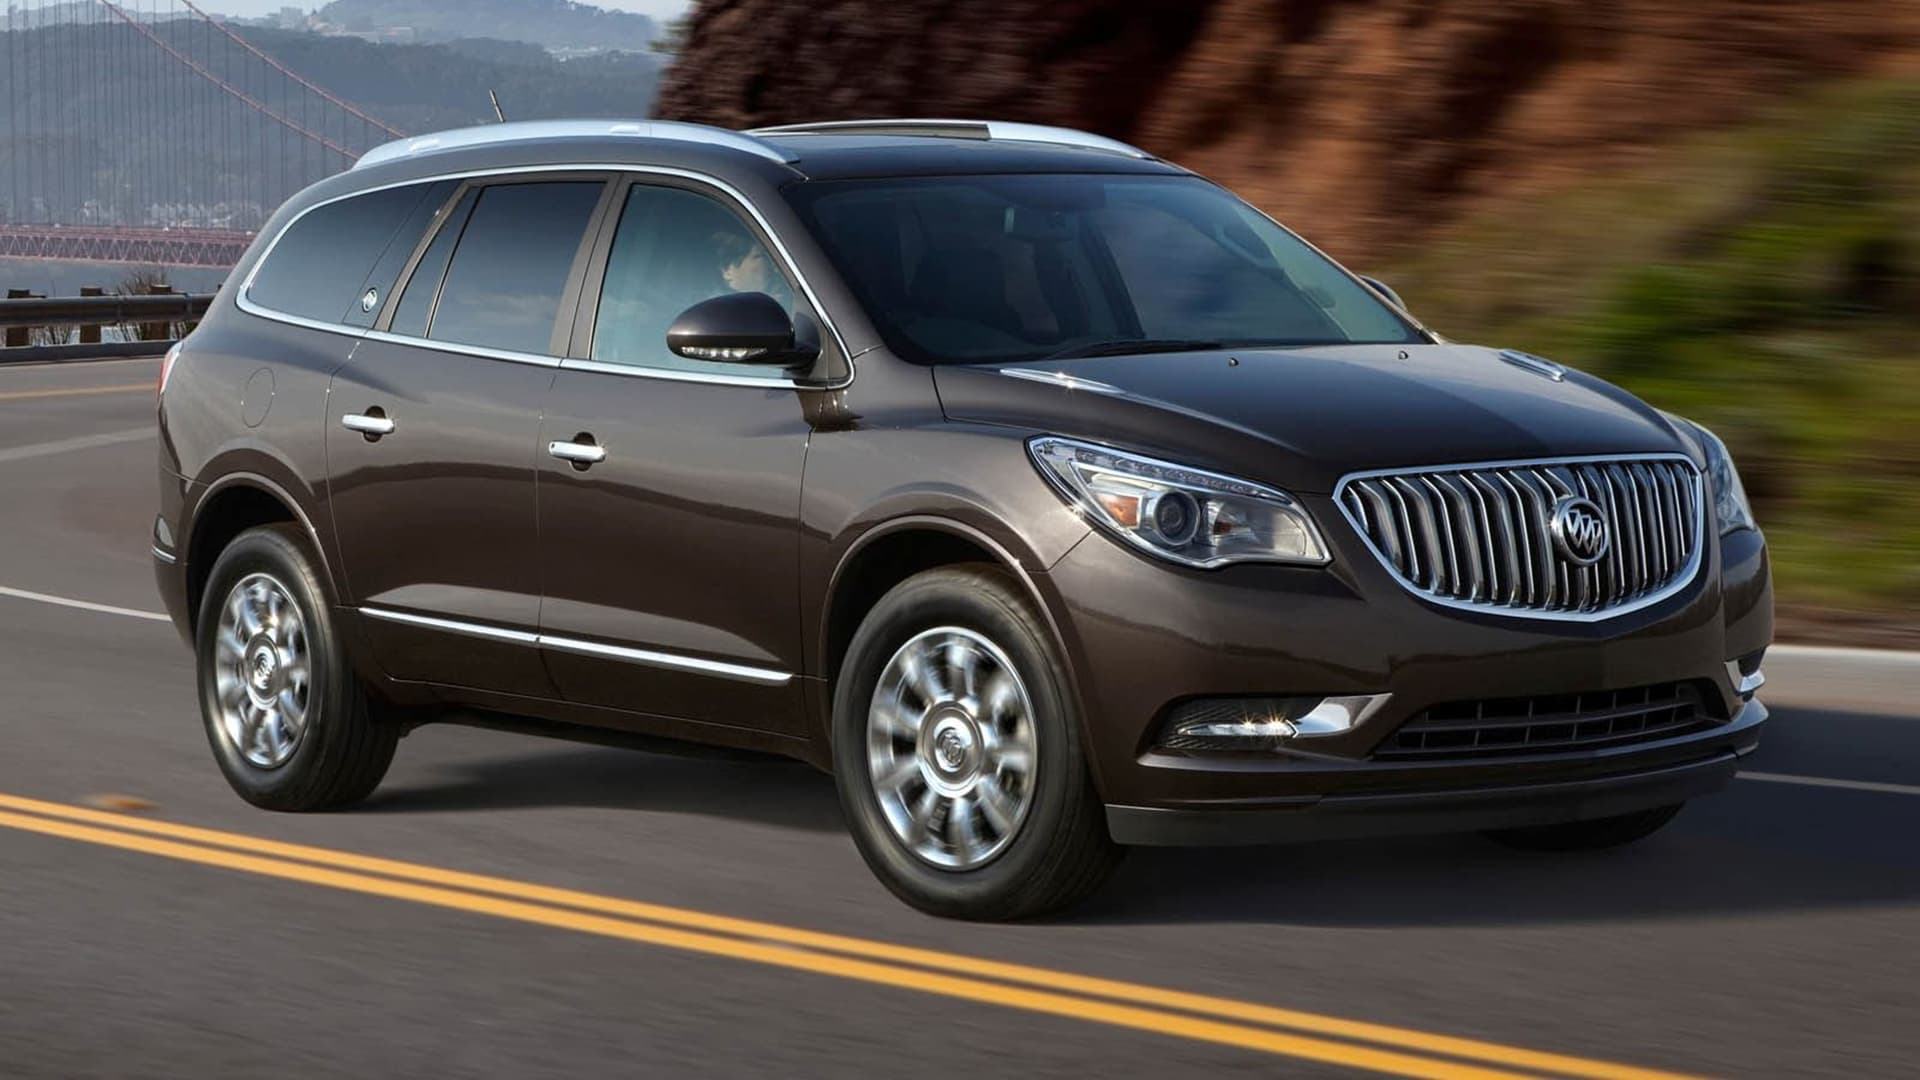 2015 Buick Enclave HD photo